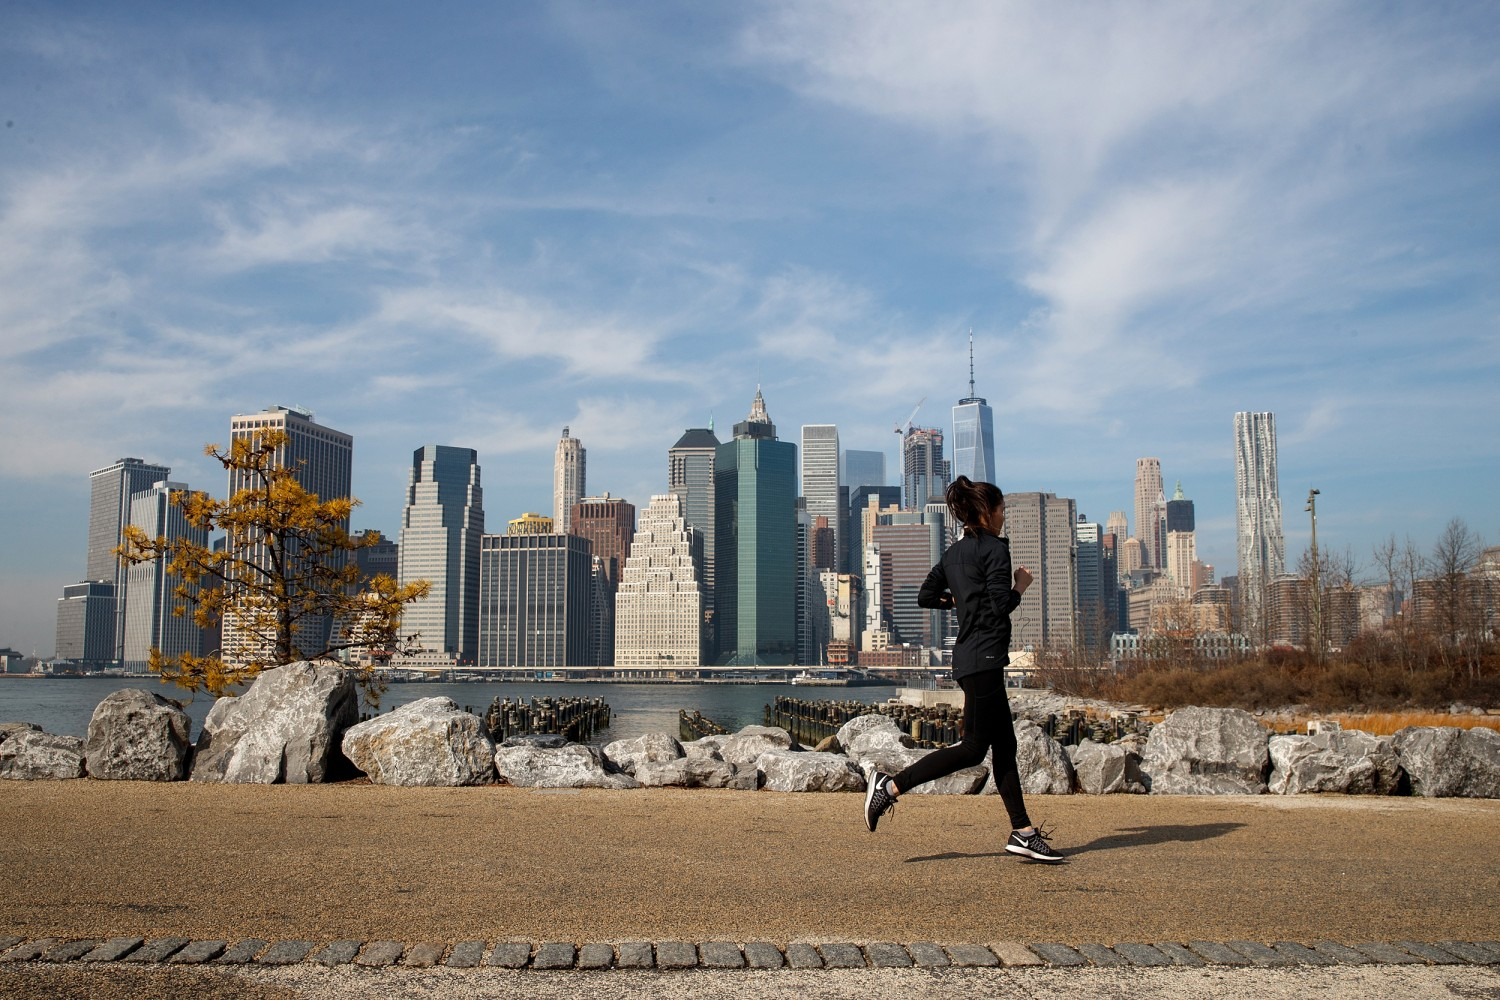 Image Unseasonably Warm February Temperatures Approach 60 Degrees In New York City